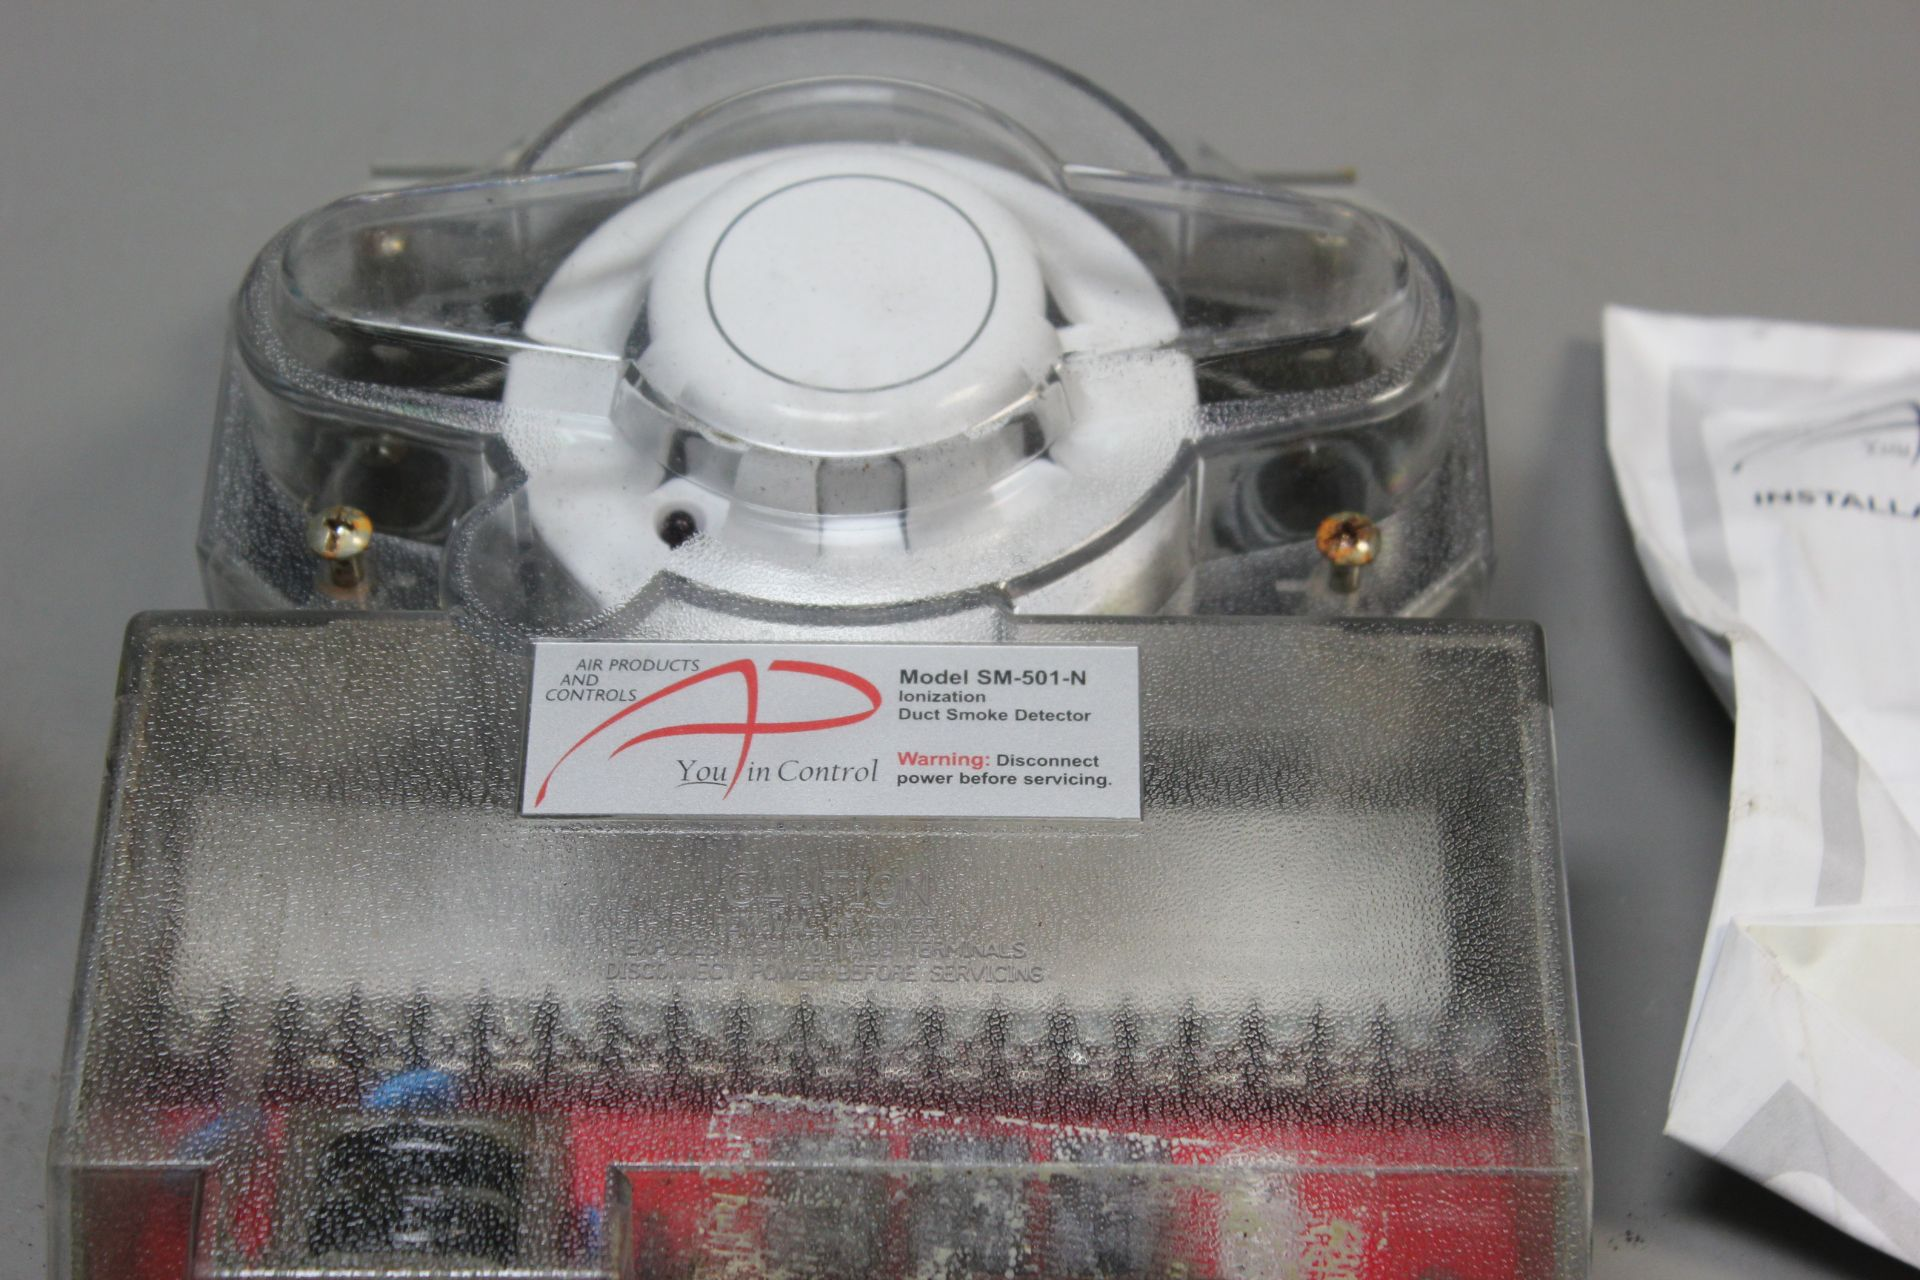 AIR PRODUCTS 4 WIRE DUCT SMOKE DETECTOR - Image 4 of 6